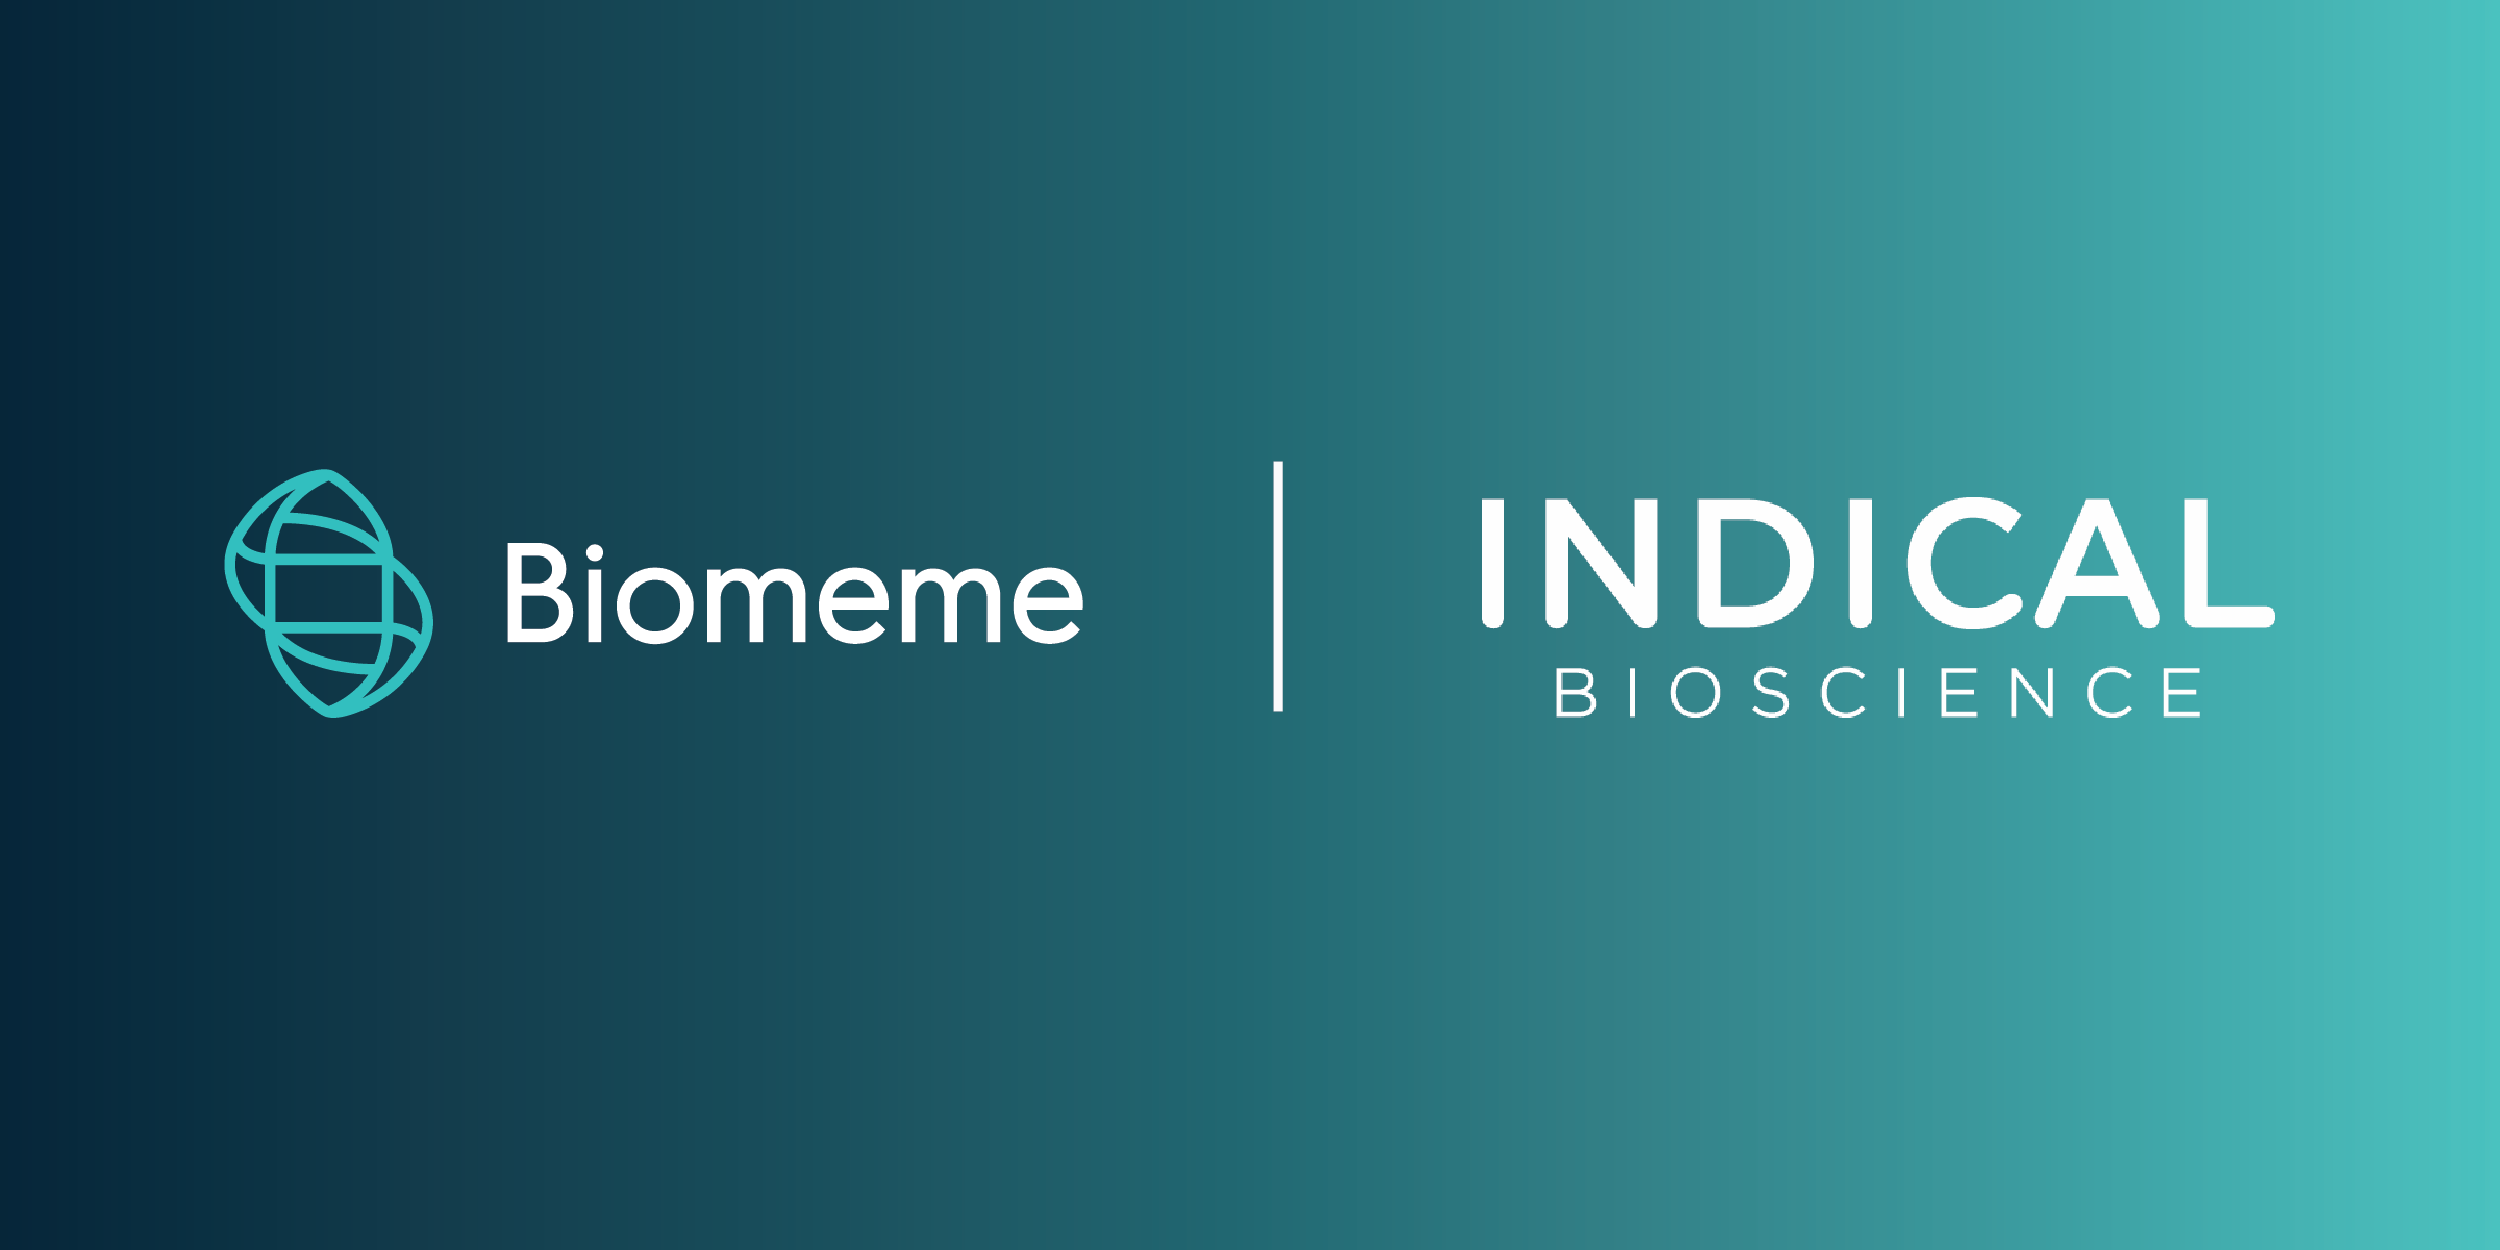 Biomeme logo and Indical biosciences logo on a gradient